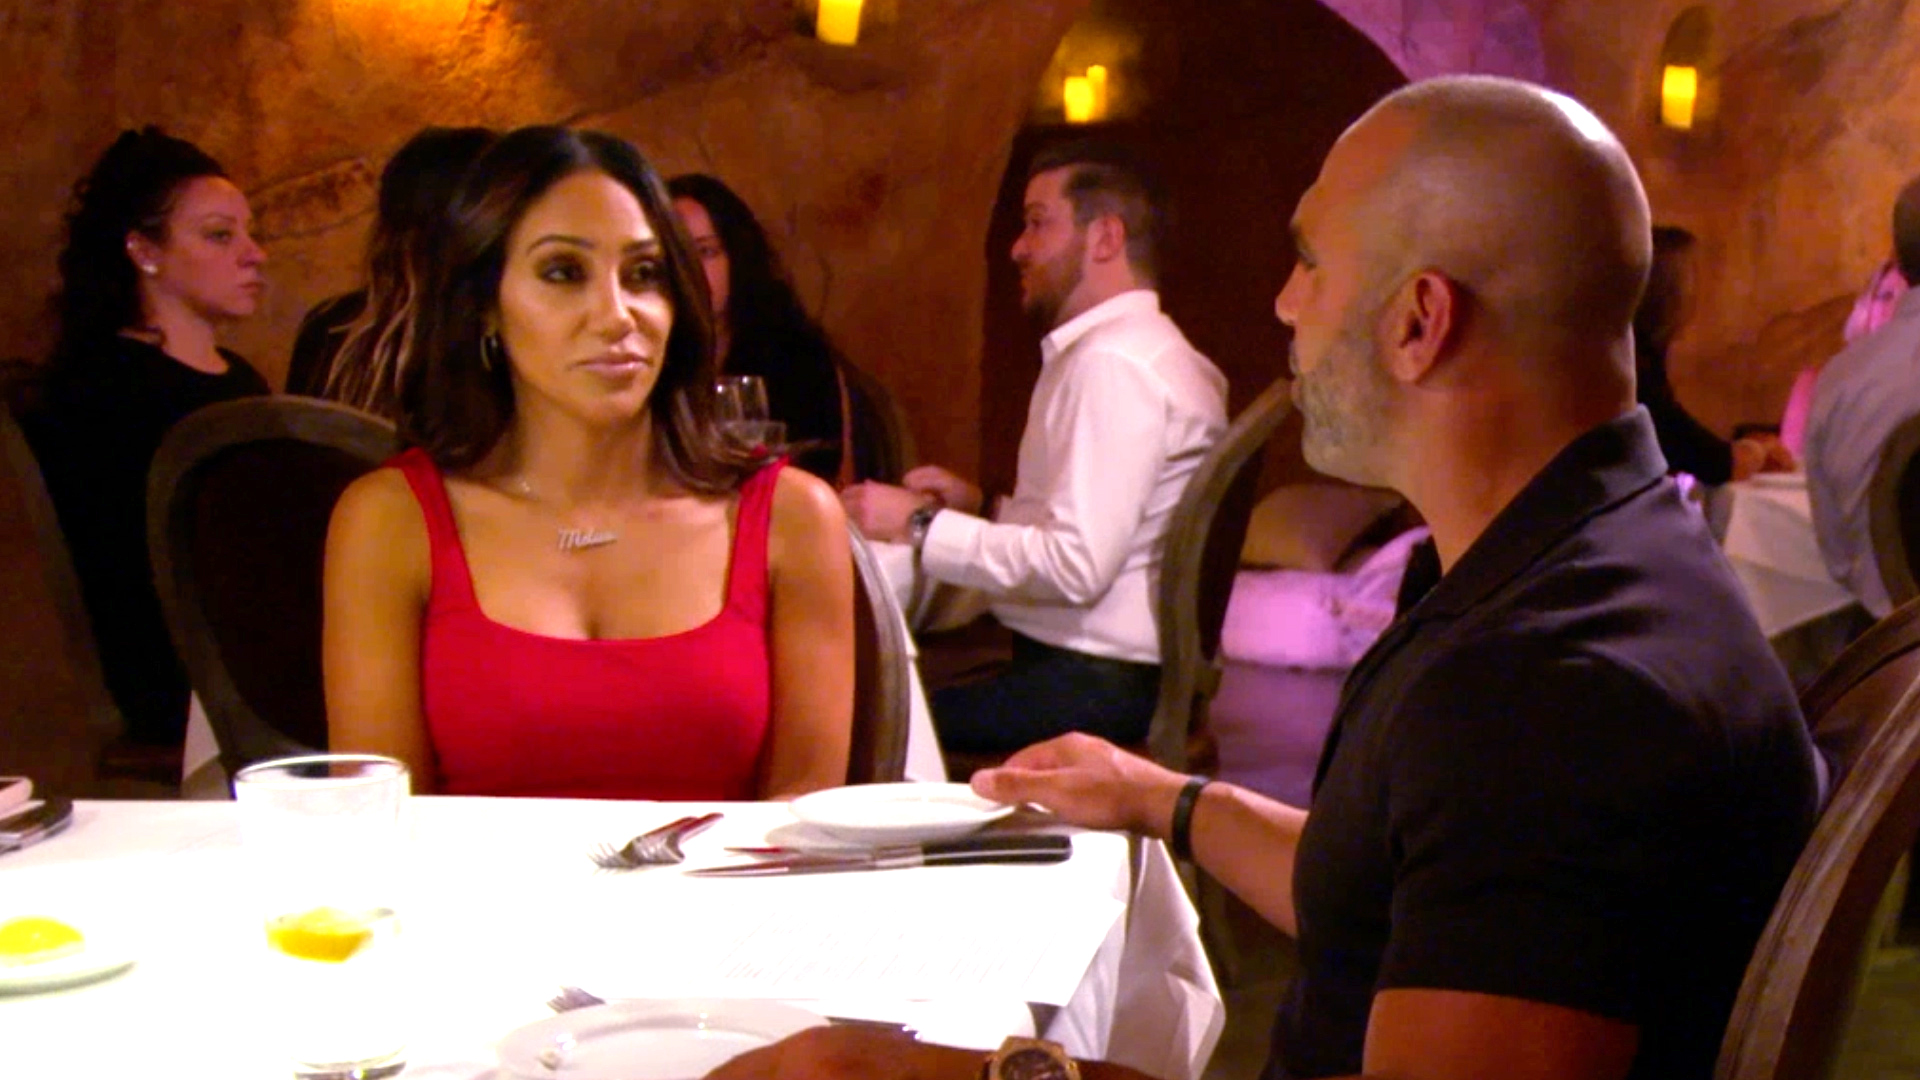 Joe Gorga Apologizes to Melissa Gorga for His Recent Behavior